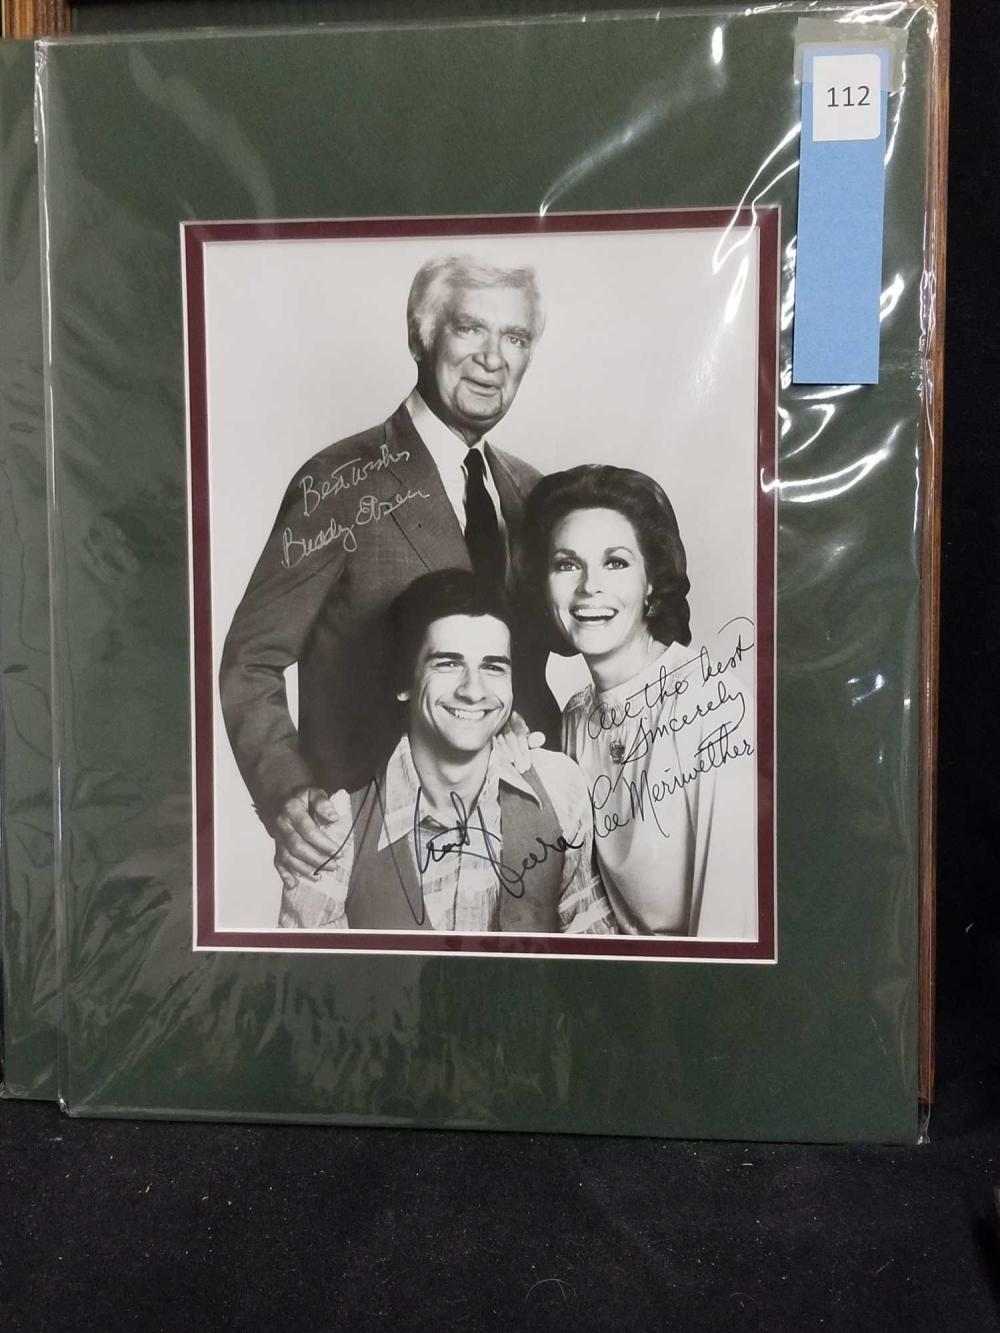 """BARNABY JONES"" CAST SIGNED BLACK & WHITE PHOTO"